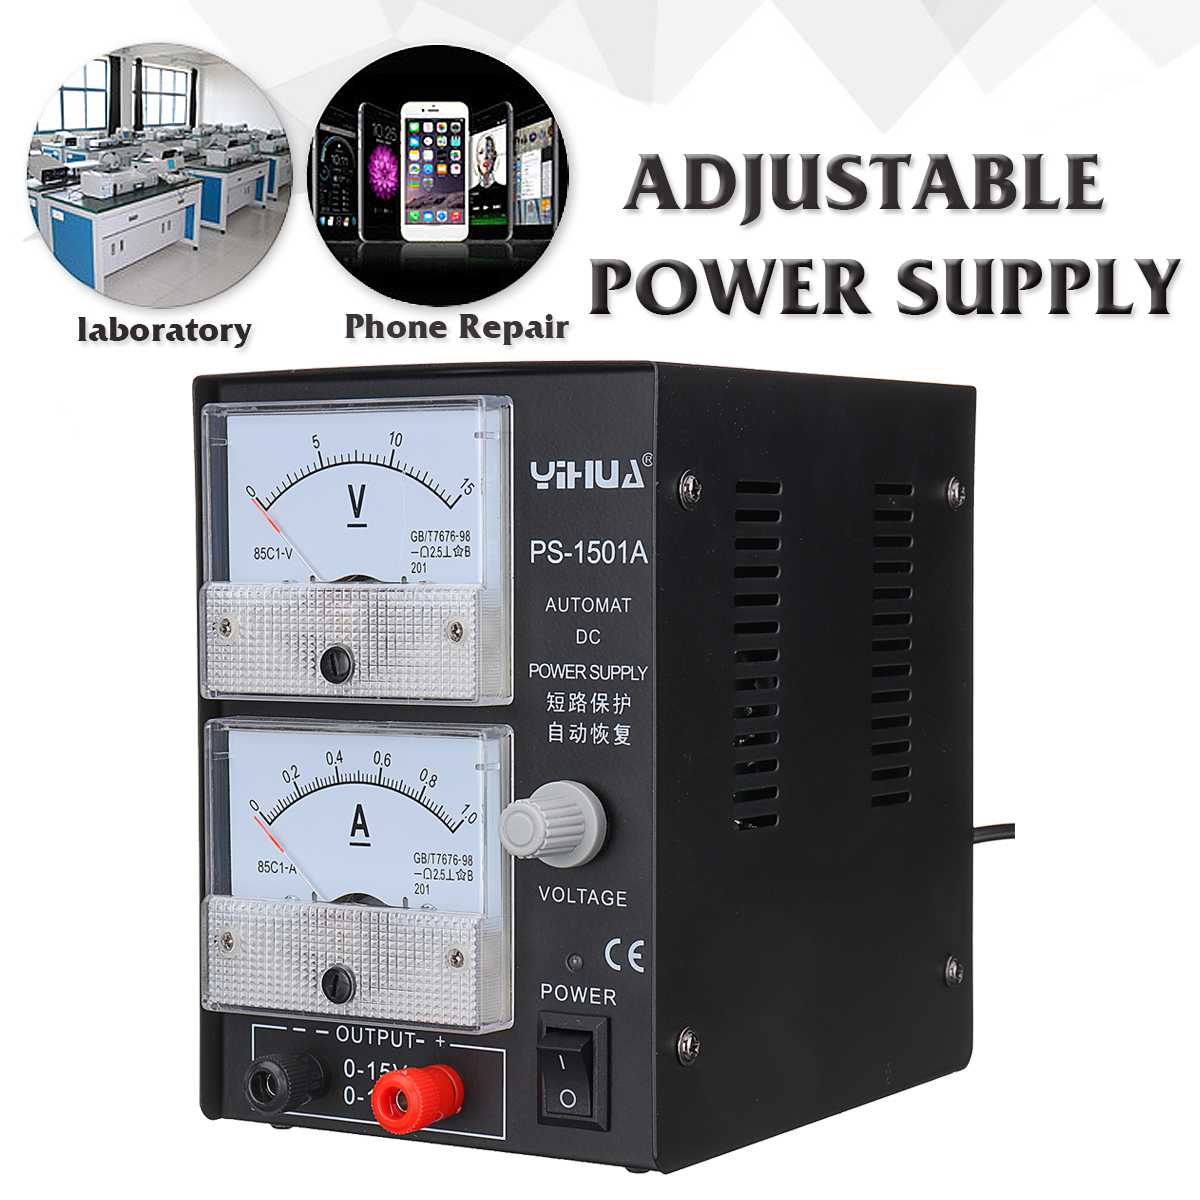 110V/ 220V adjustable dc power supply 15V/1A DC Power Supply Circuit protection for motor, fan, car DVD Phone Repair maitech dc 12 v 0 1a cooling fan red silver